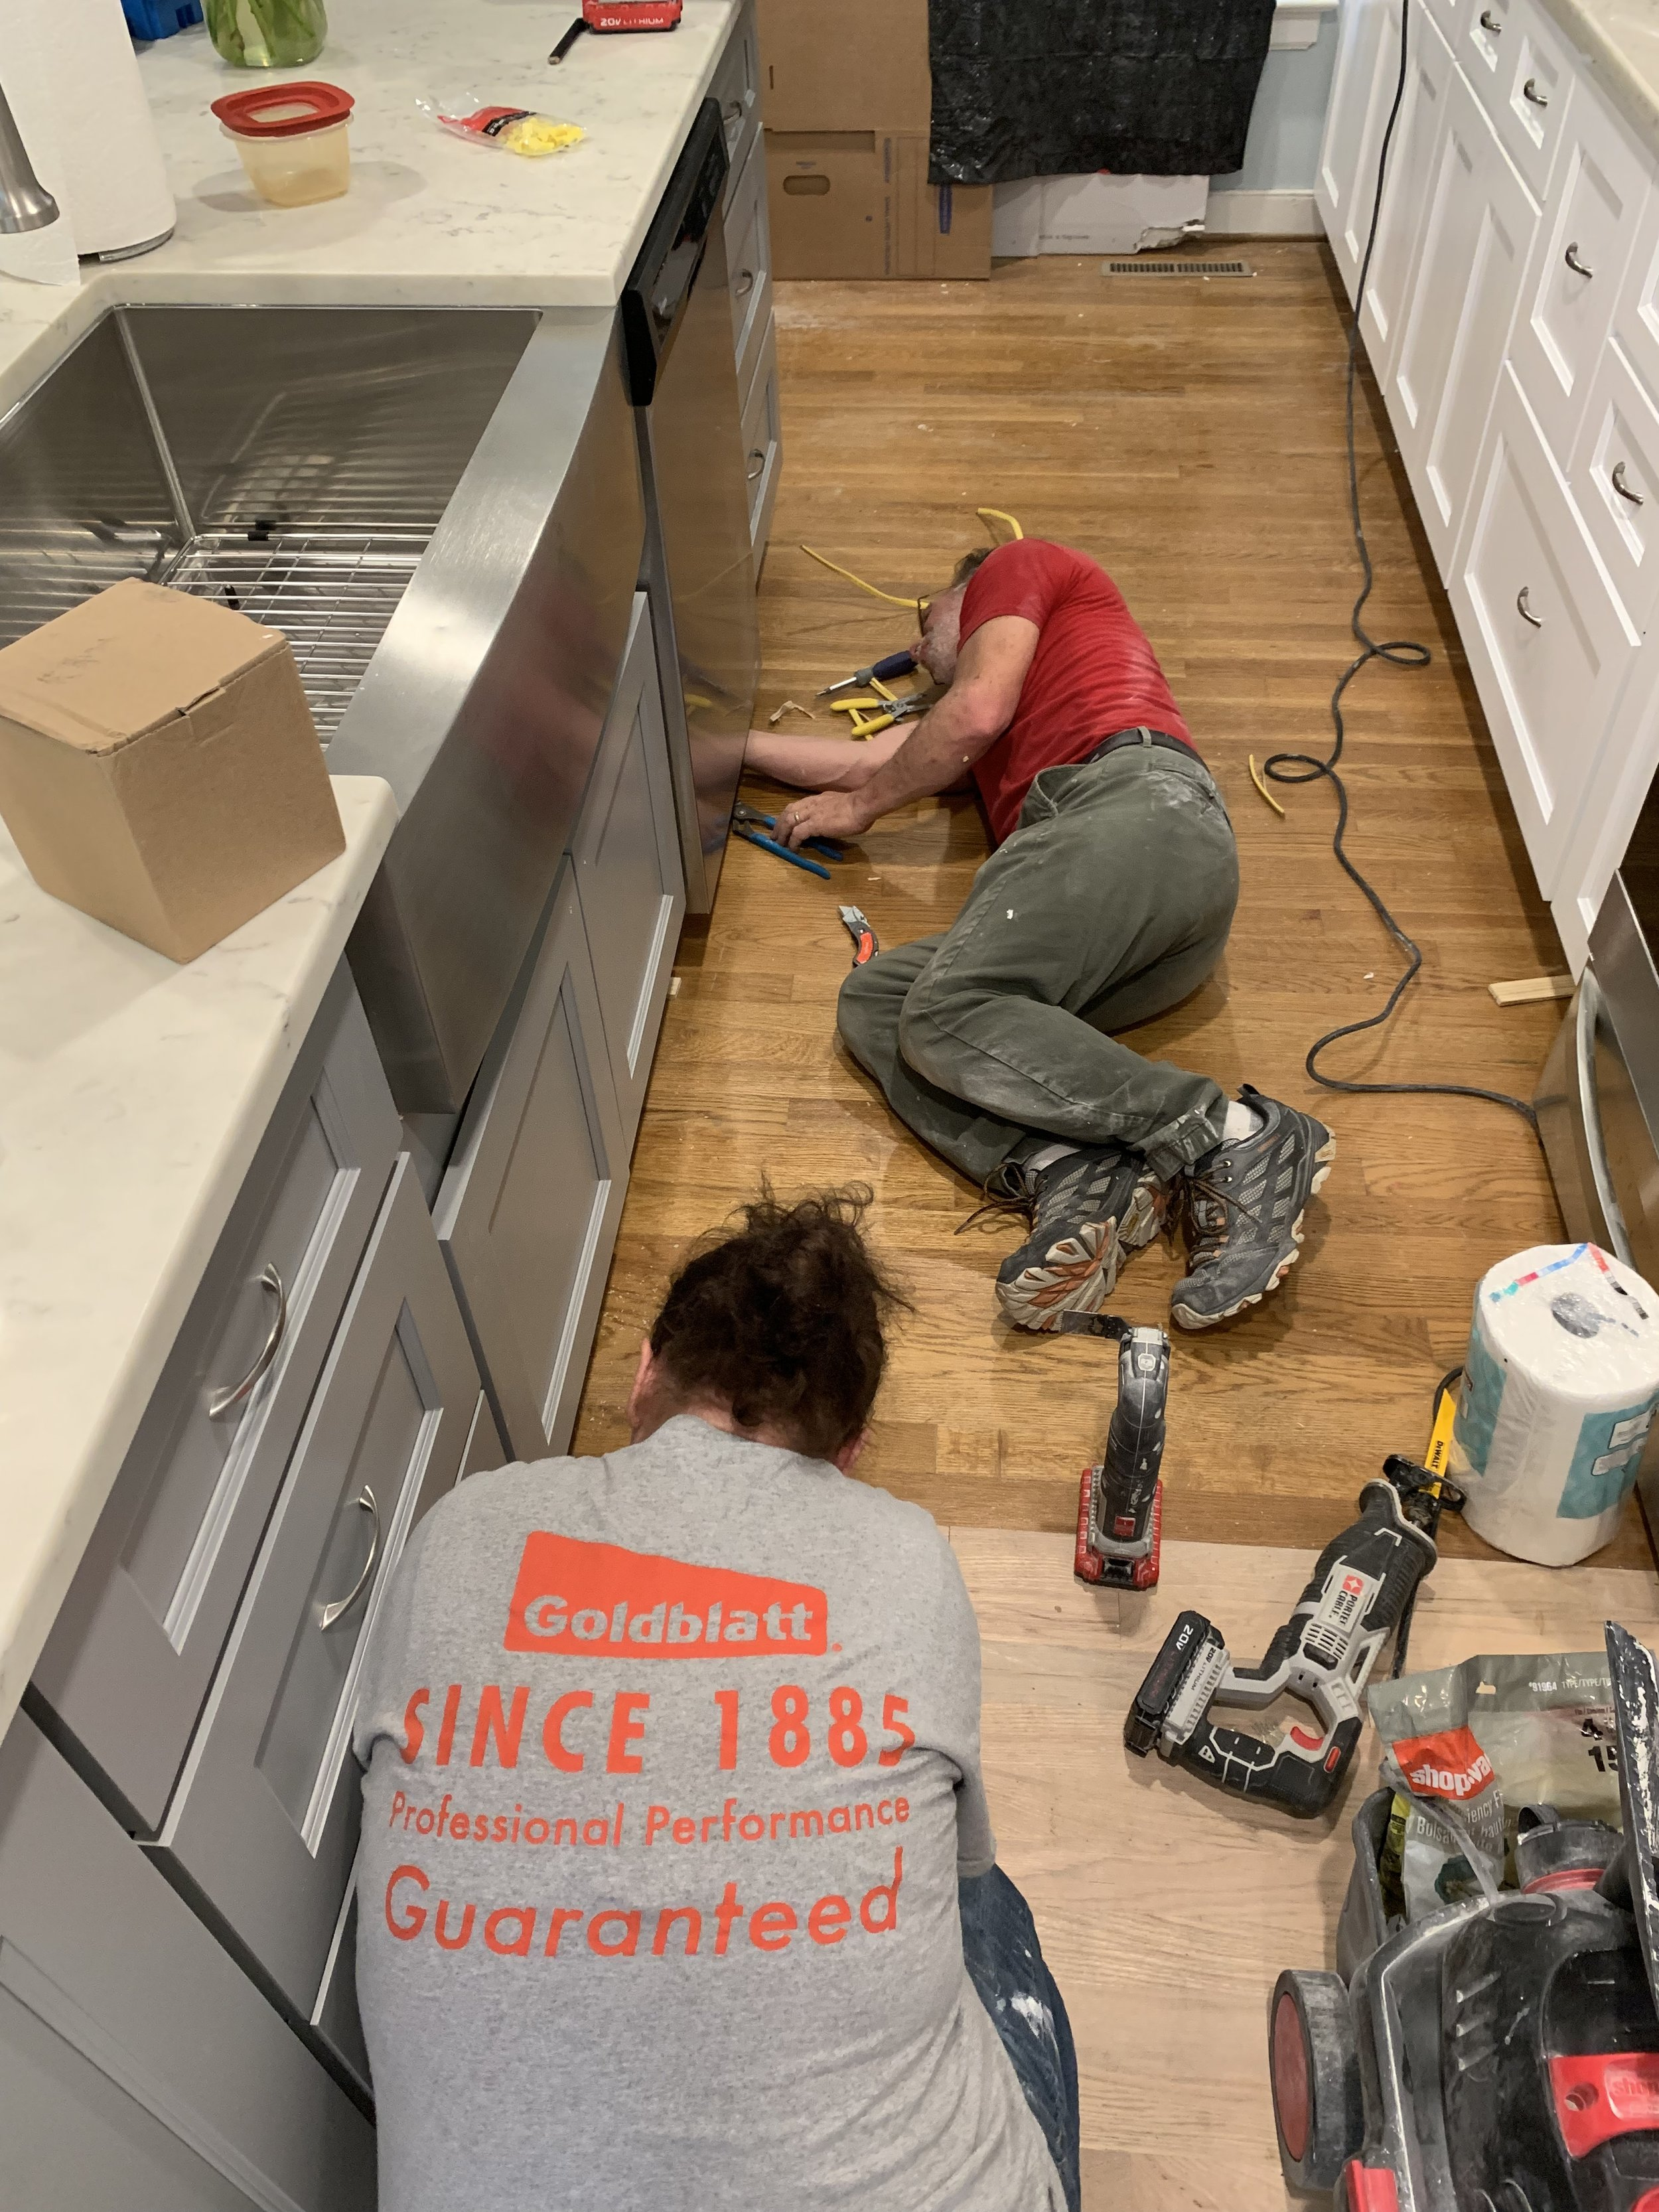 Shout out to our contractors,  Mark and Traci Johnson , who took our vision and executed it! Notice the two-toned floors. We had the tile removed and had wood floors put down instead.